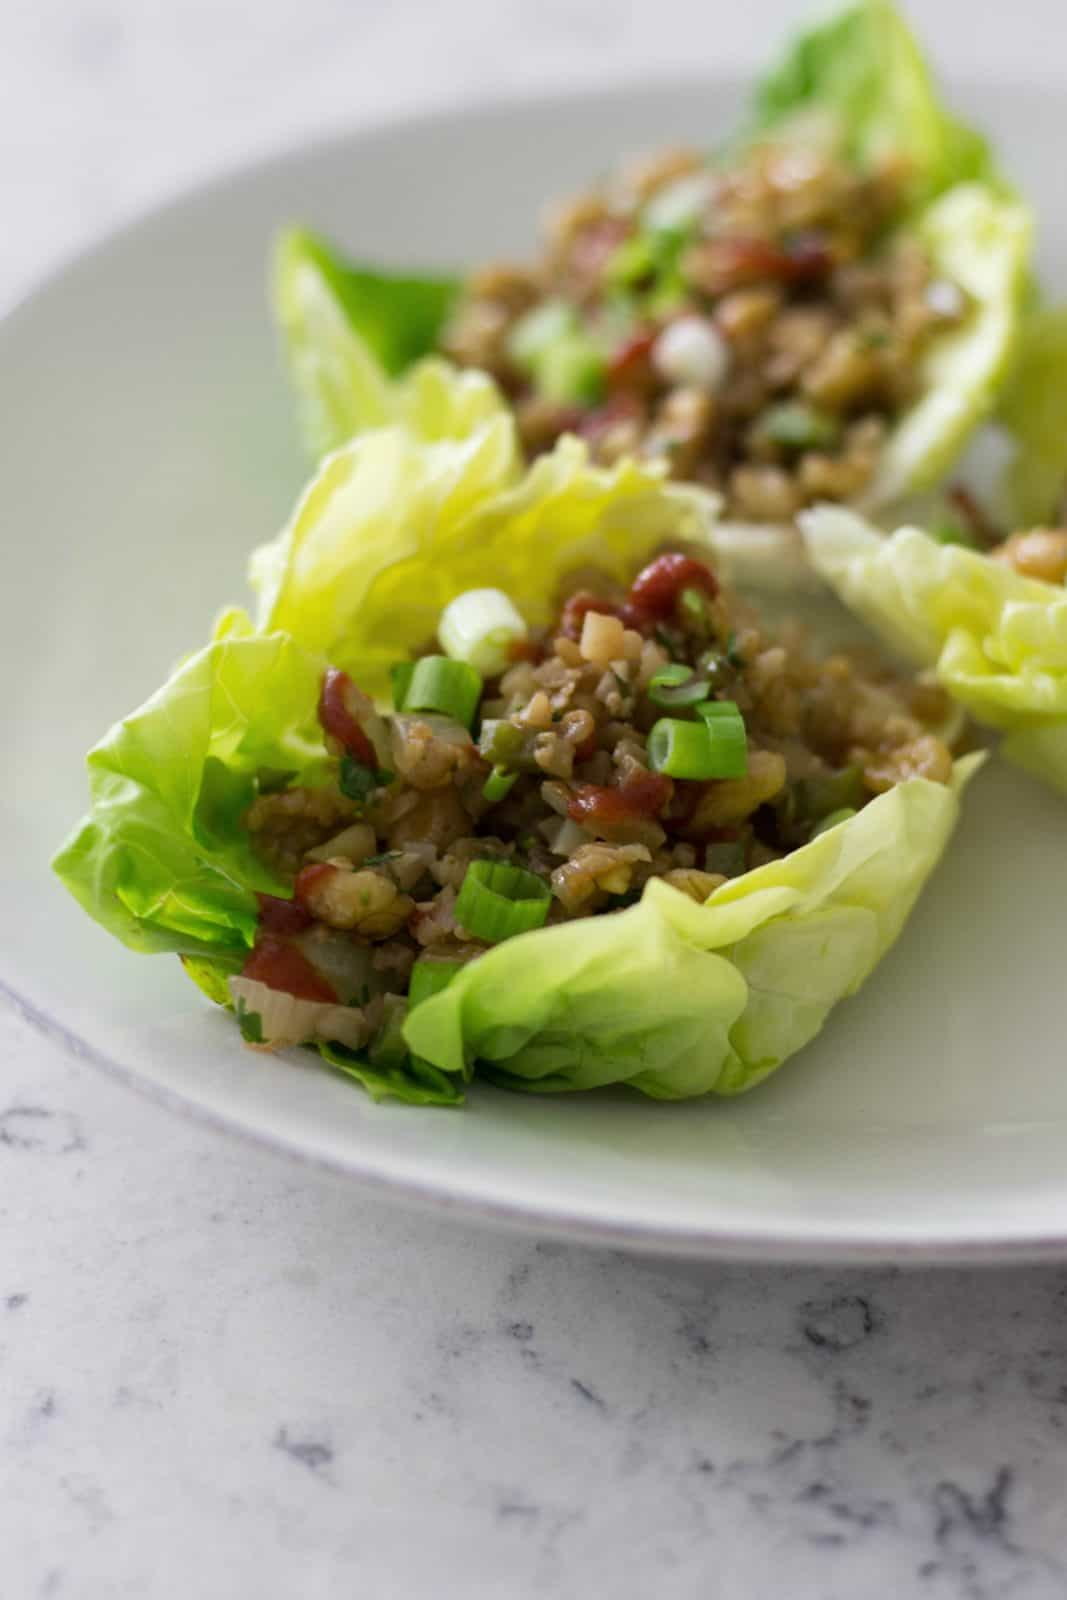 Side close-up shot of lettuce cups on a white plate